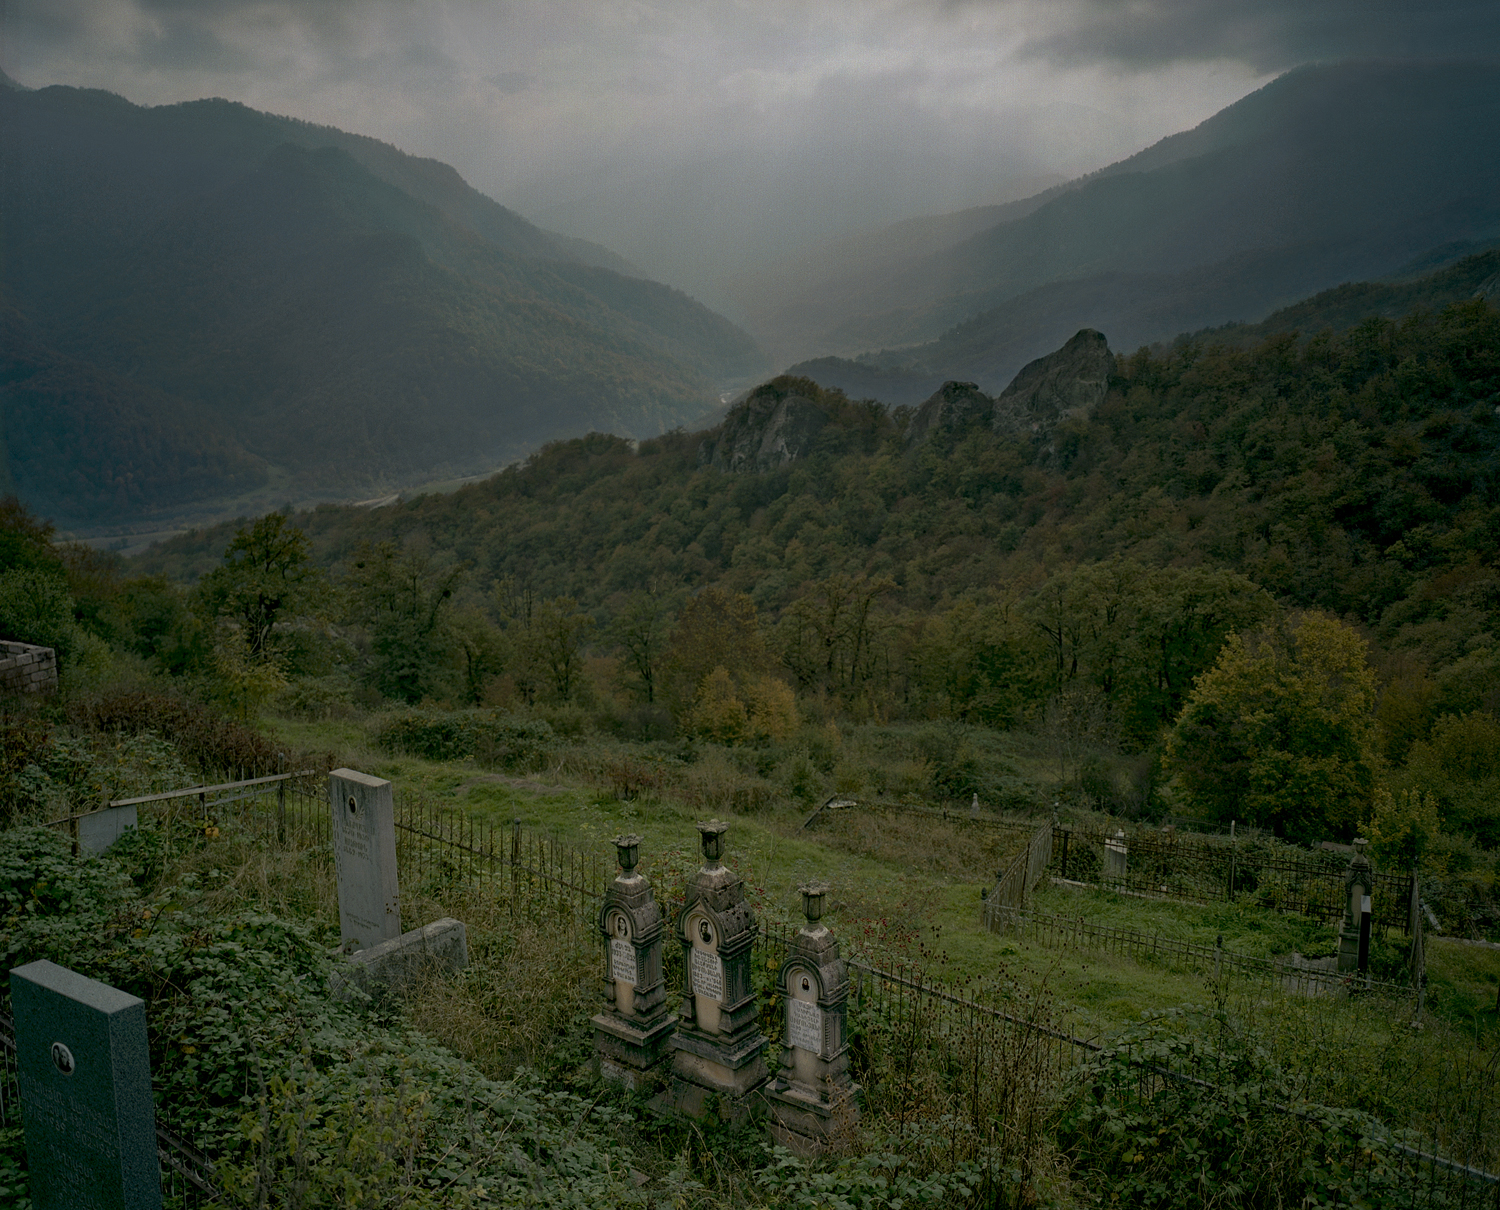 Gandzasar. Cemeteries are placed in central places because of the peoples' sad and stormy past. Folks visit almost every day the graves.